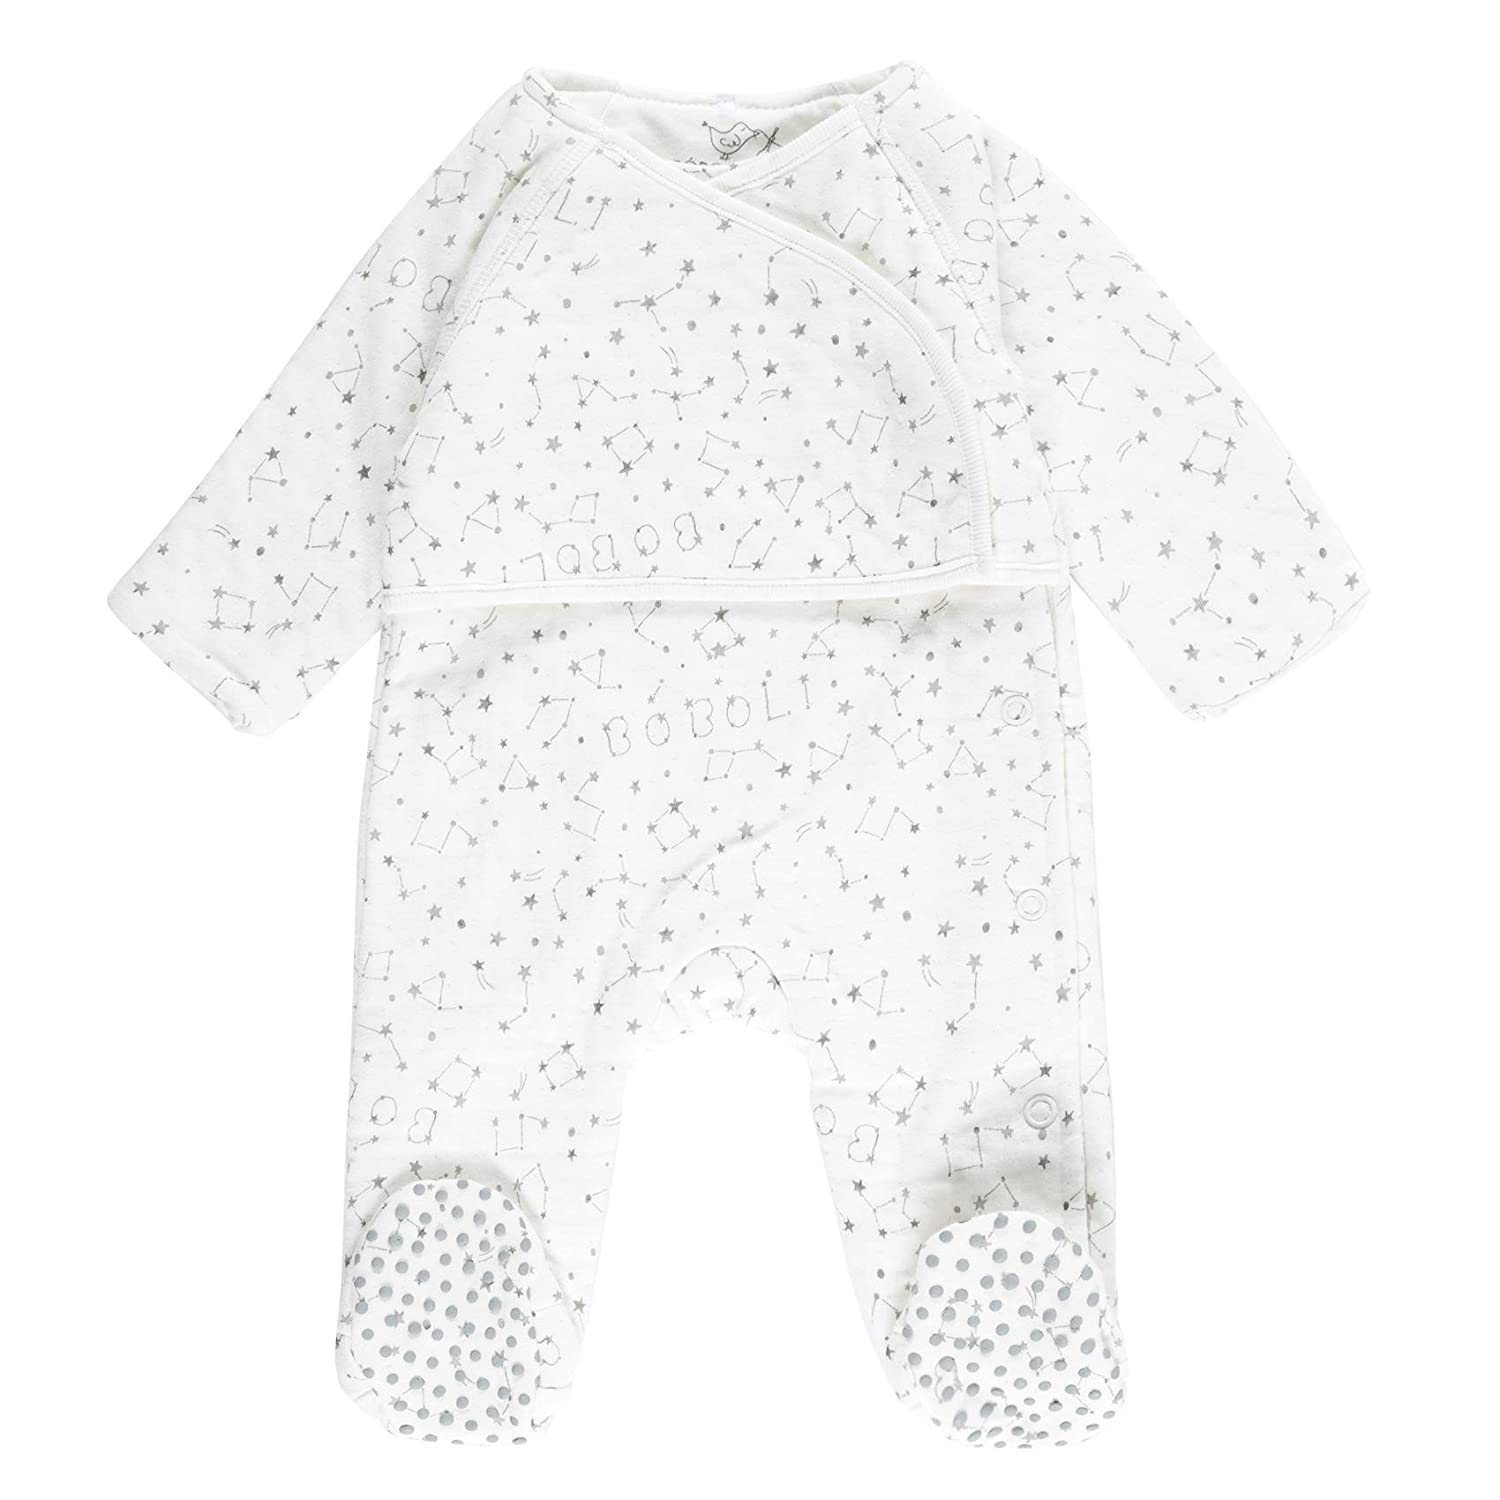 Boboli Unisex Knit Play Suit for Baby Strampler